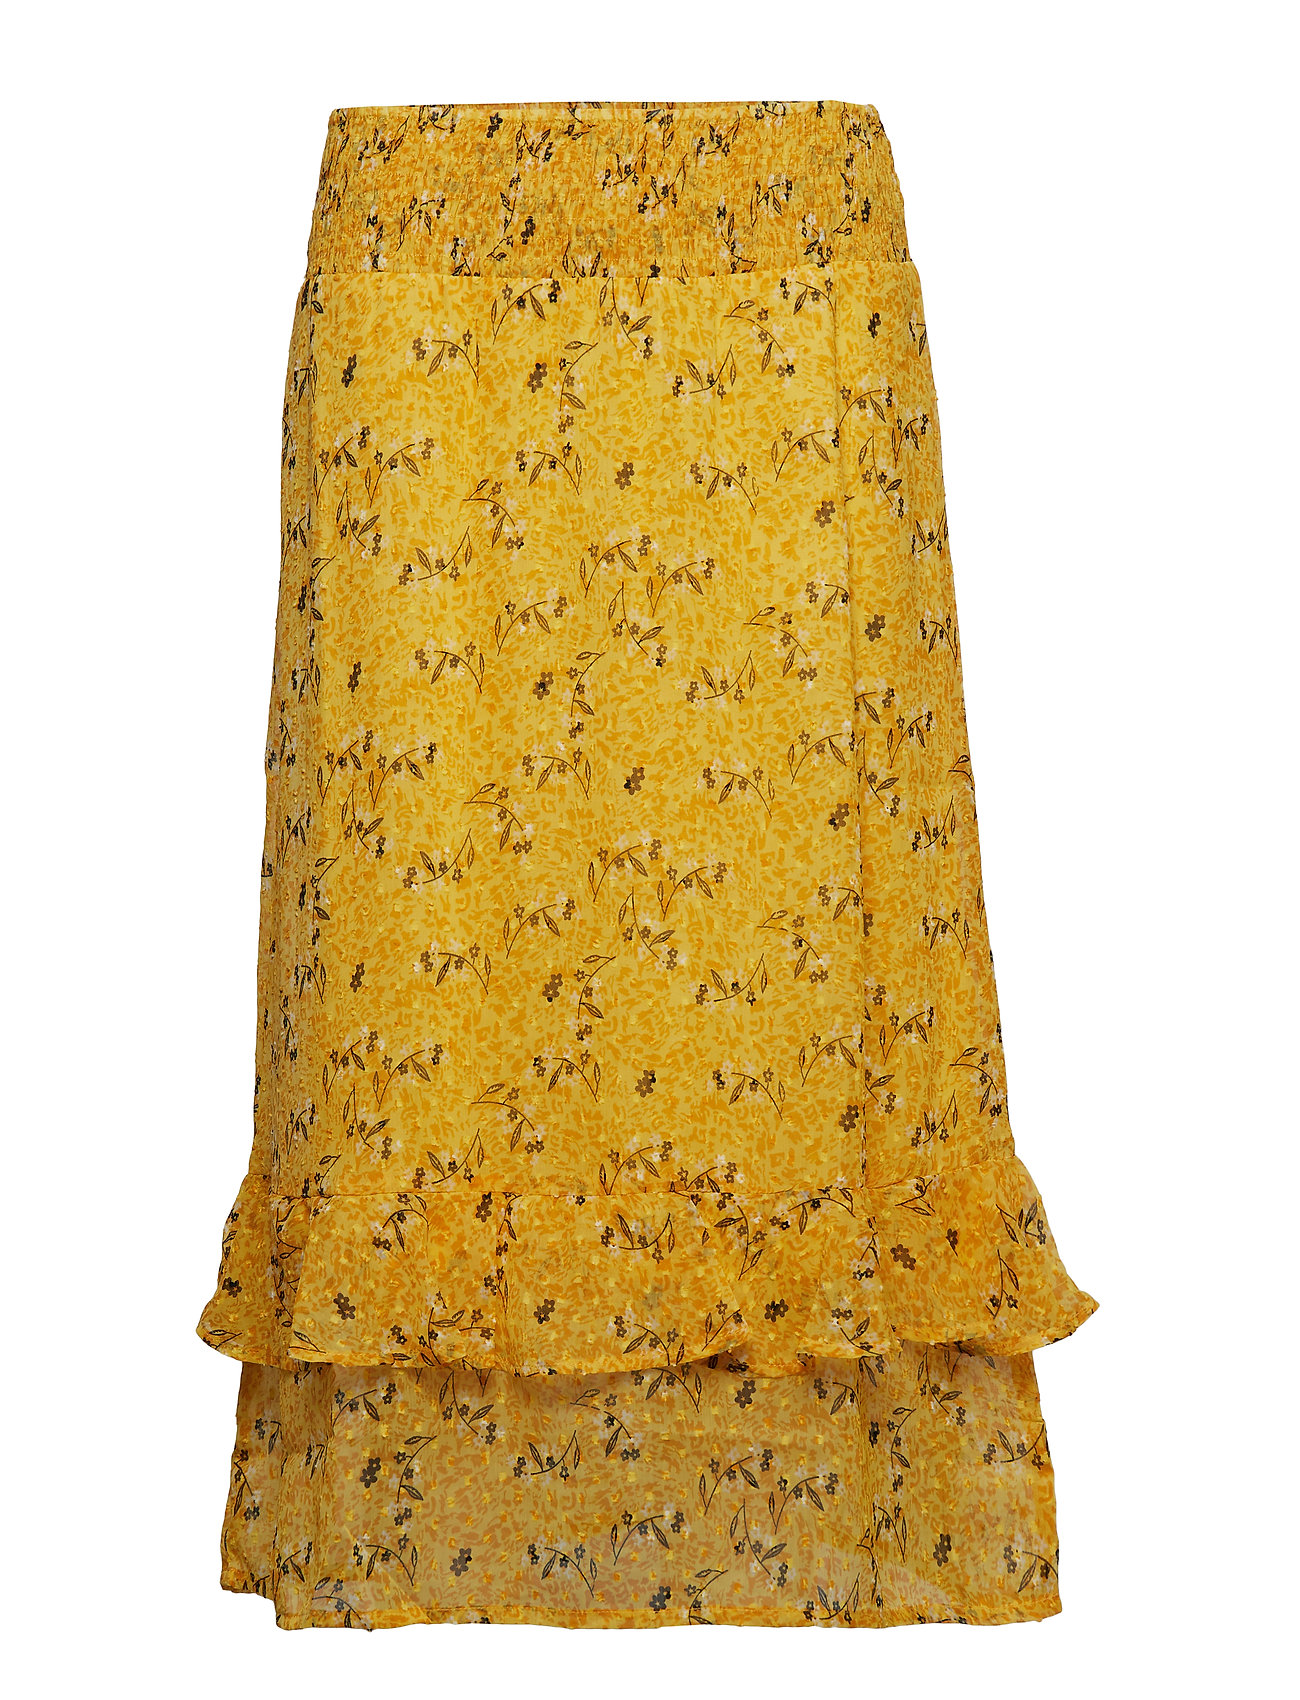 Cream Dimitra Skirt - CORNSILK YELLOW